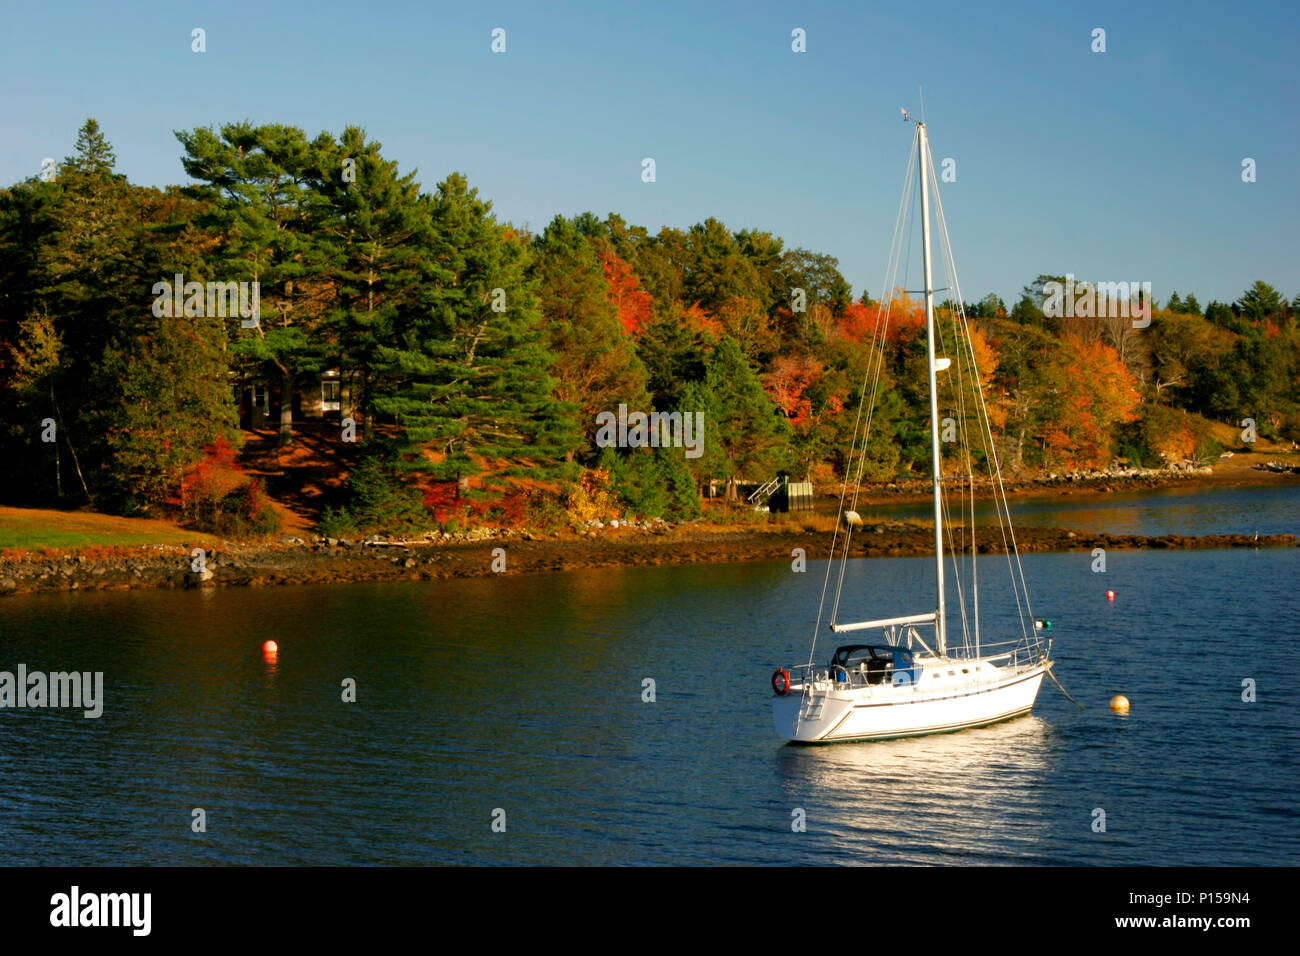 A beautiful yacht moored in the water beside a forest of fall trees - Stock Image